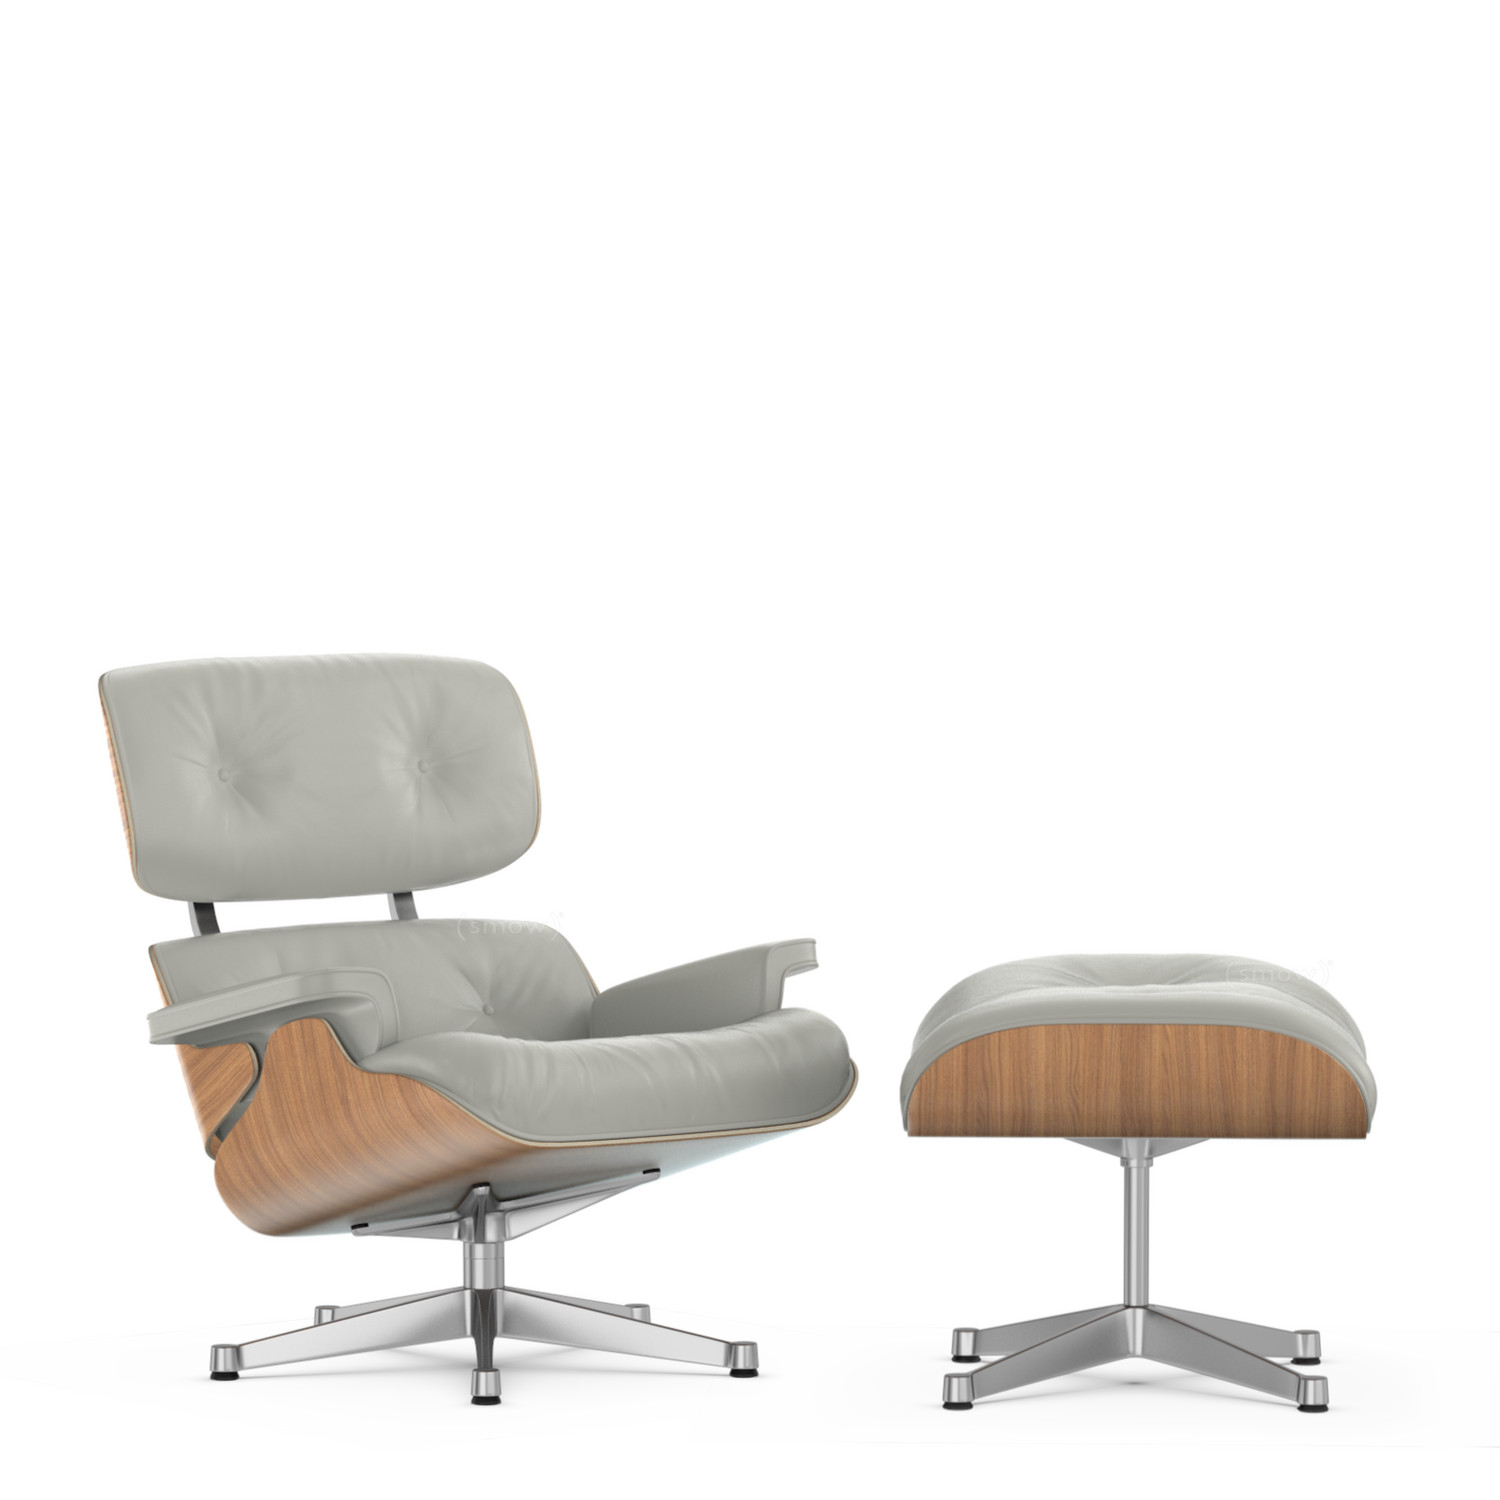 De Eames Stoel : Vitra lounge chair & ottoman beauty versions nussbaum weiß